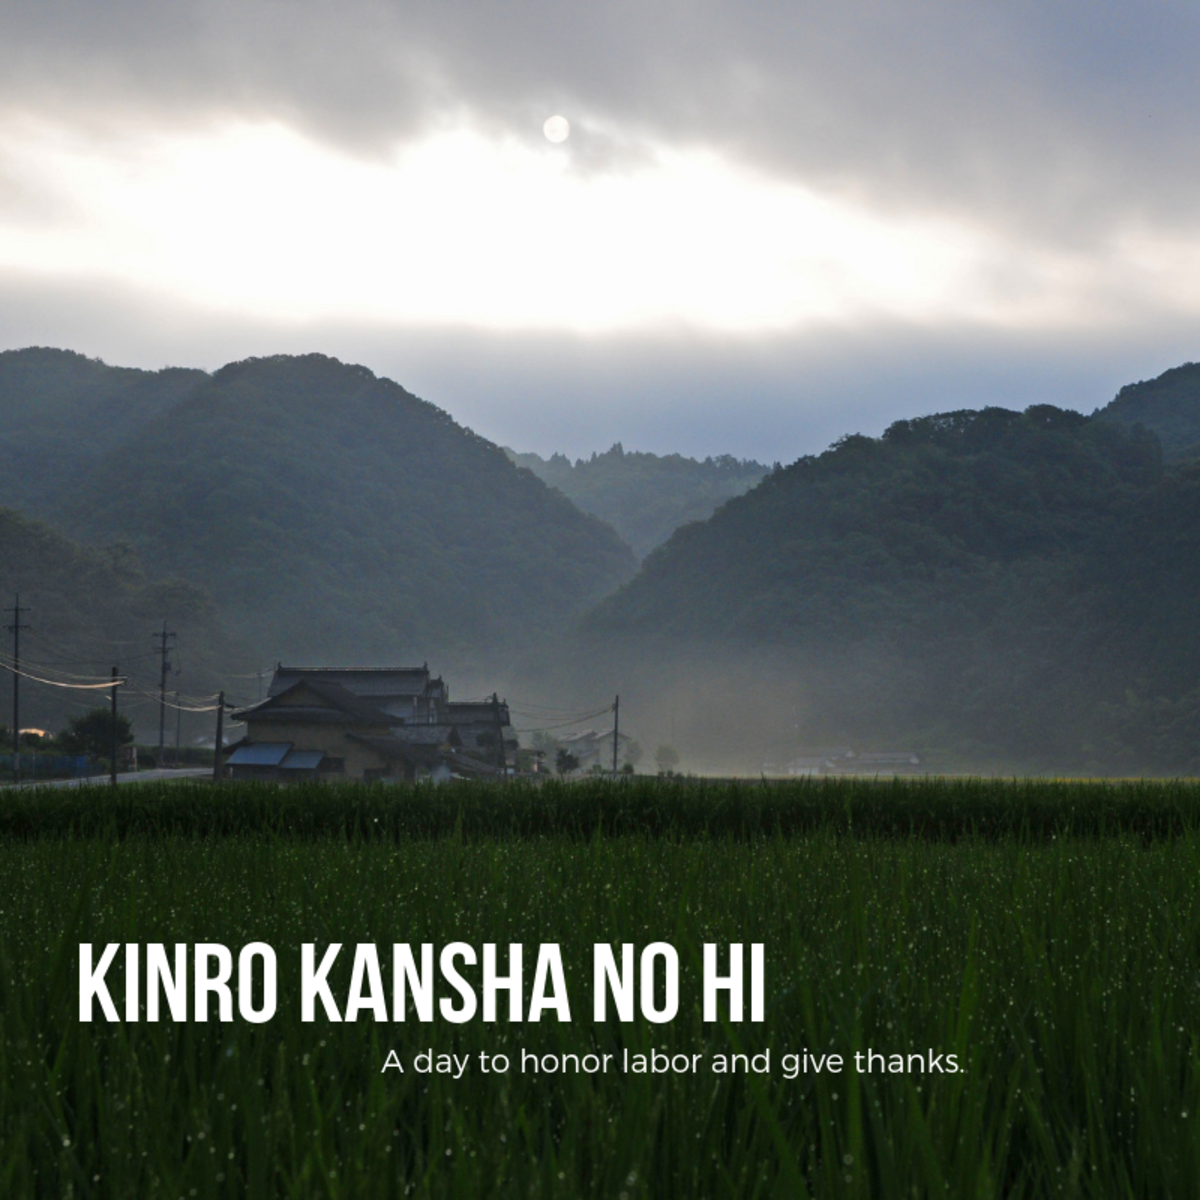 Kinro Kansha No Hi is somewhat akin to Labor Day in Japan, but there are some key differences.